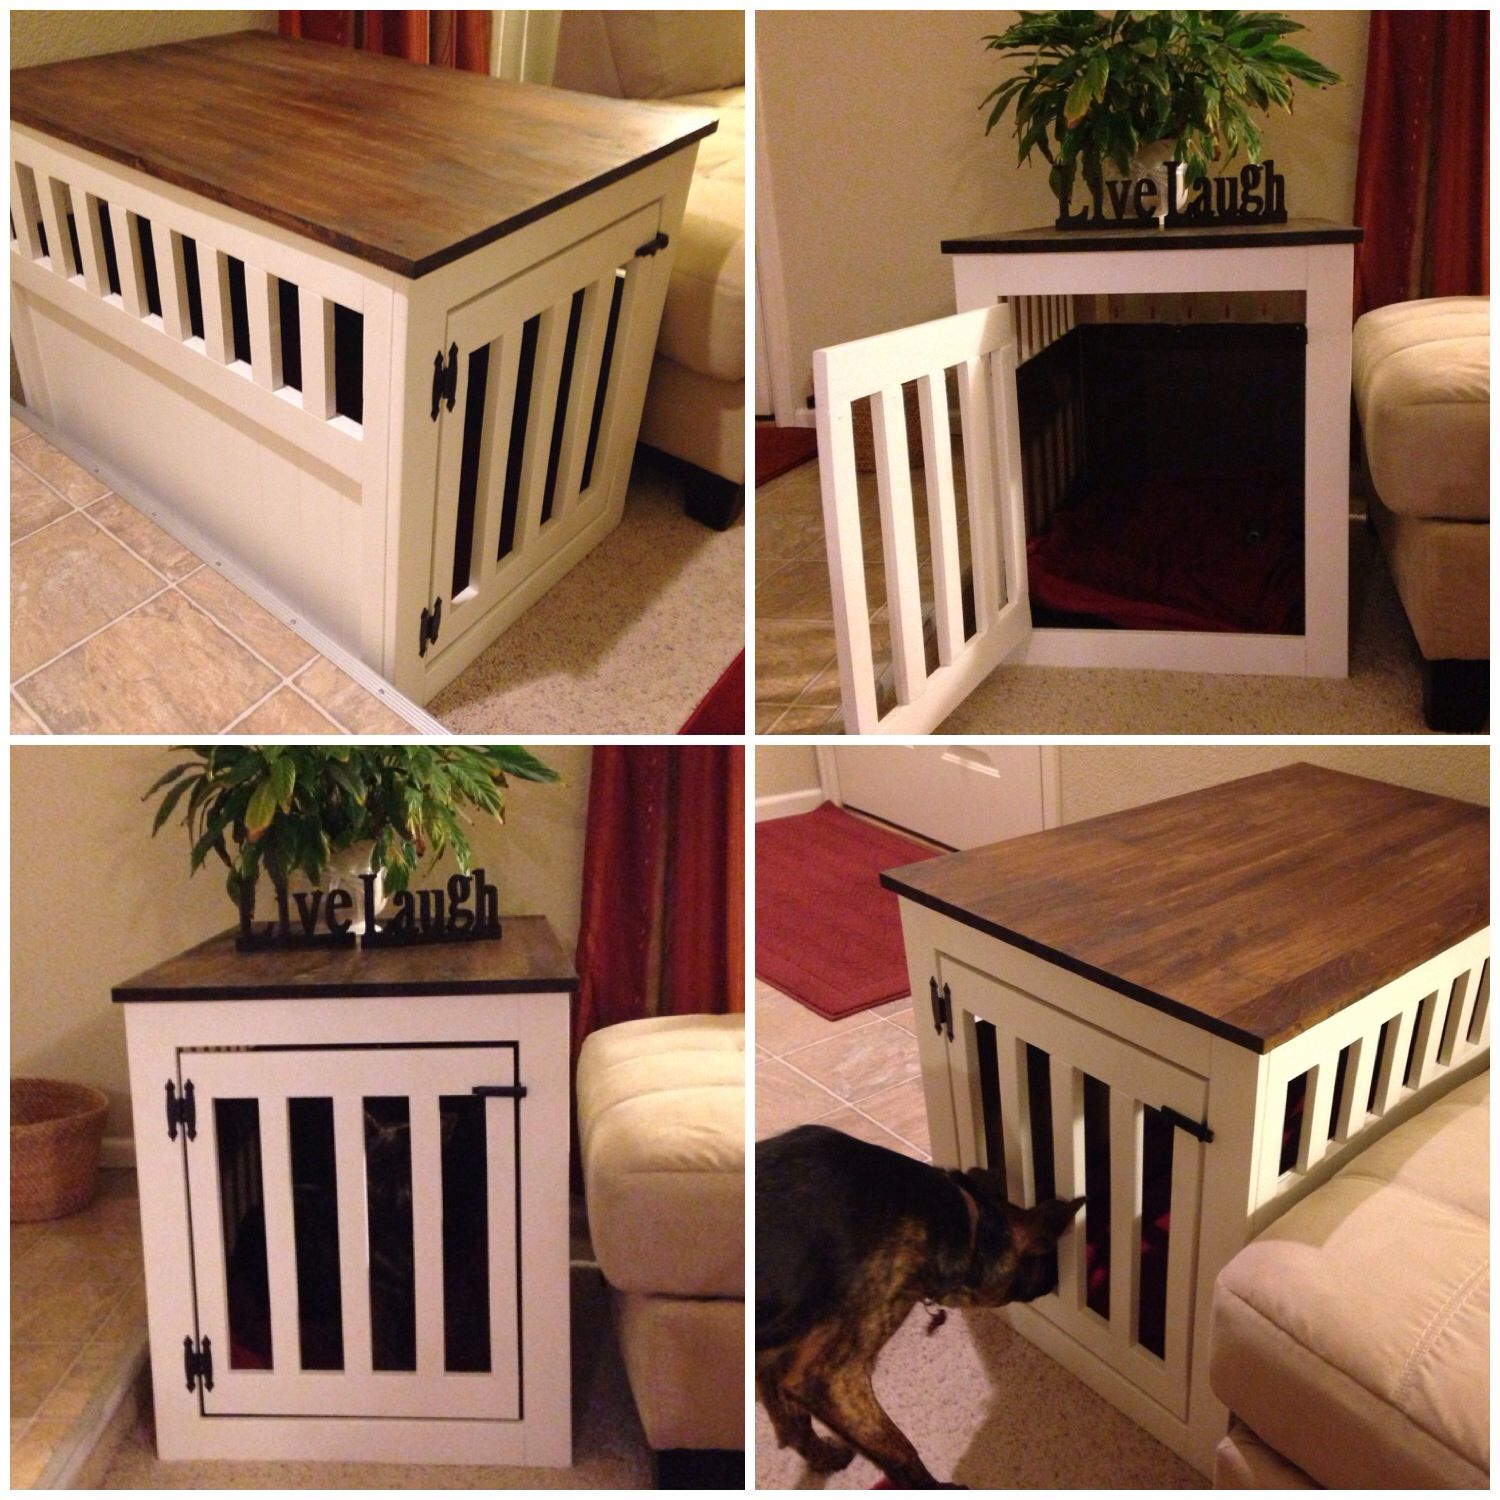 Puppy Has A New Crate! Instead Of Spending $200+ On One Of These At Part 89